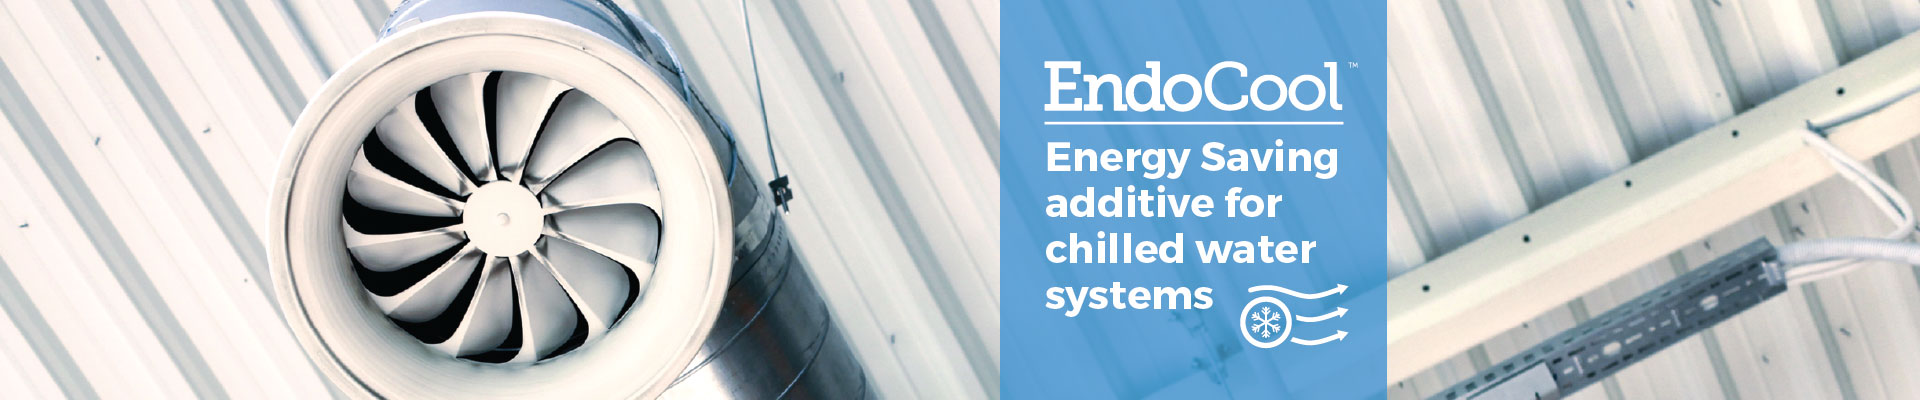 EndoCool Energy Saving Additive for Chilled Water Systems